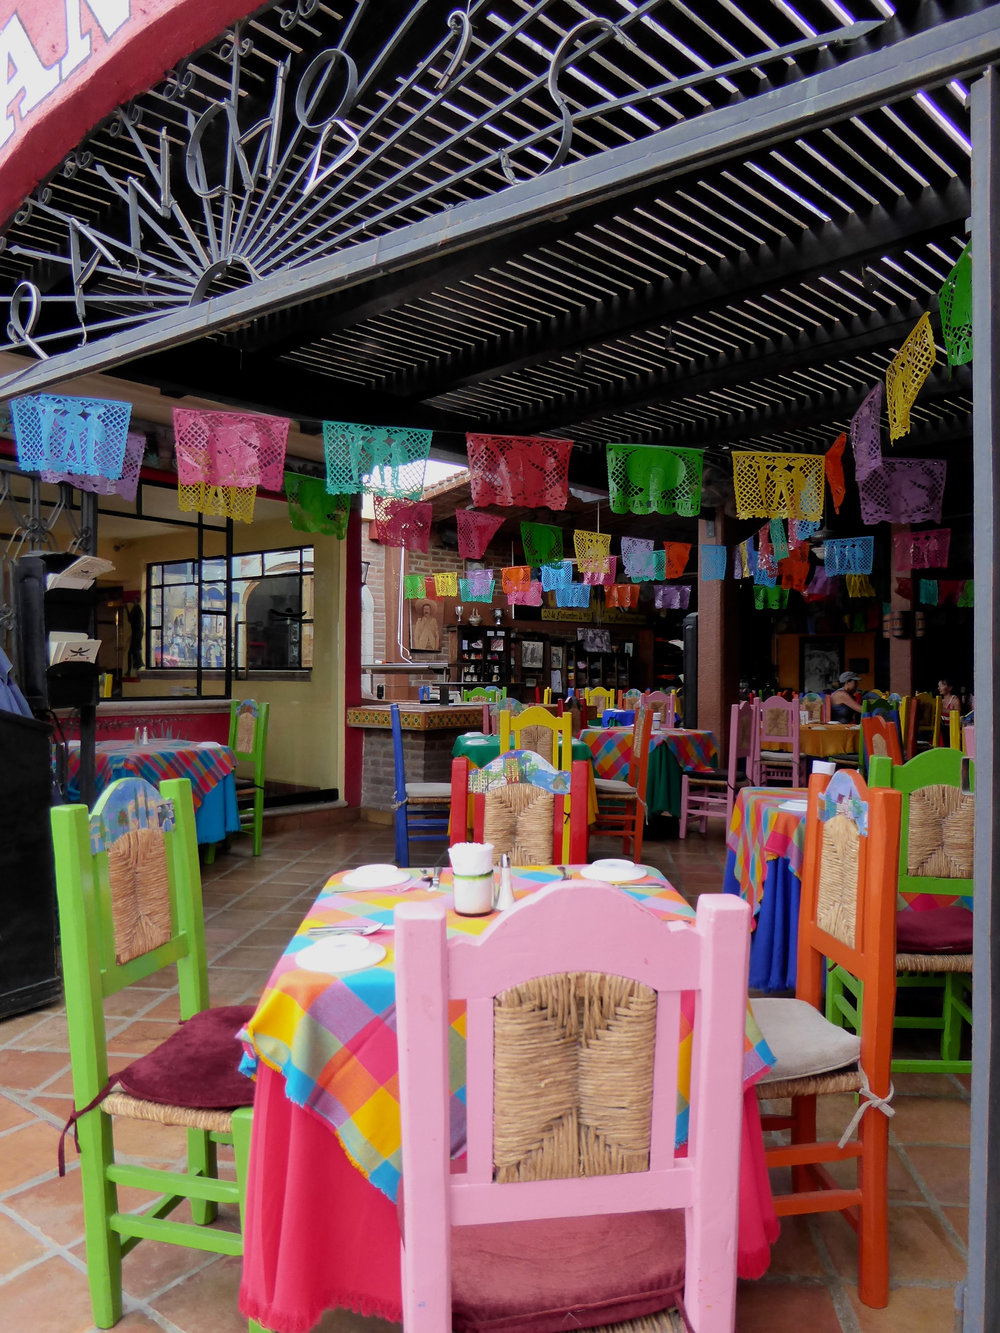 cindi_cabosanlucas_town_restaurant_bedcloths_spiritedtable_photo20.jpg